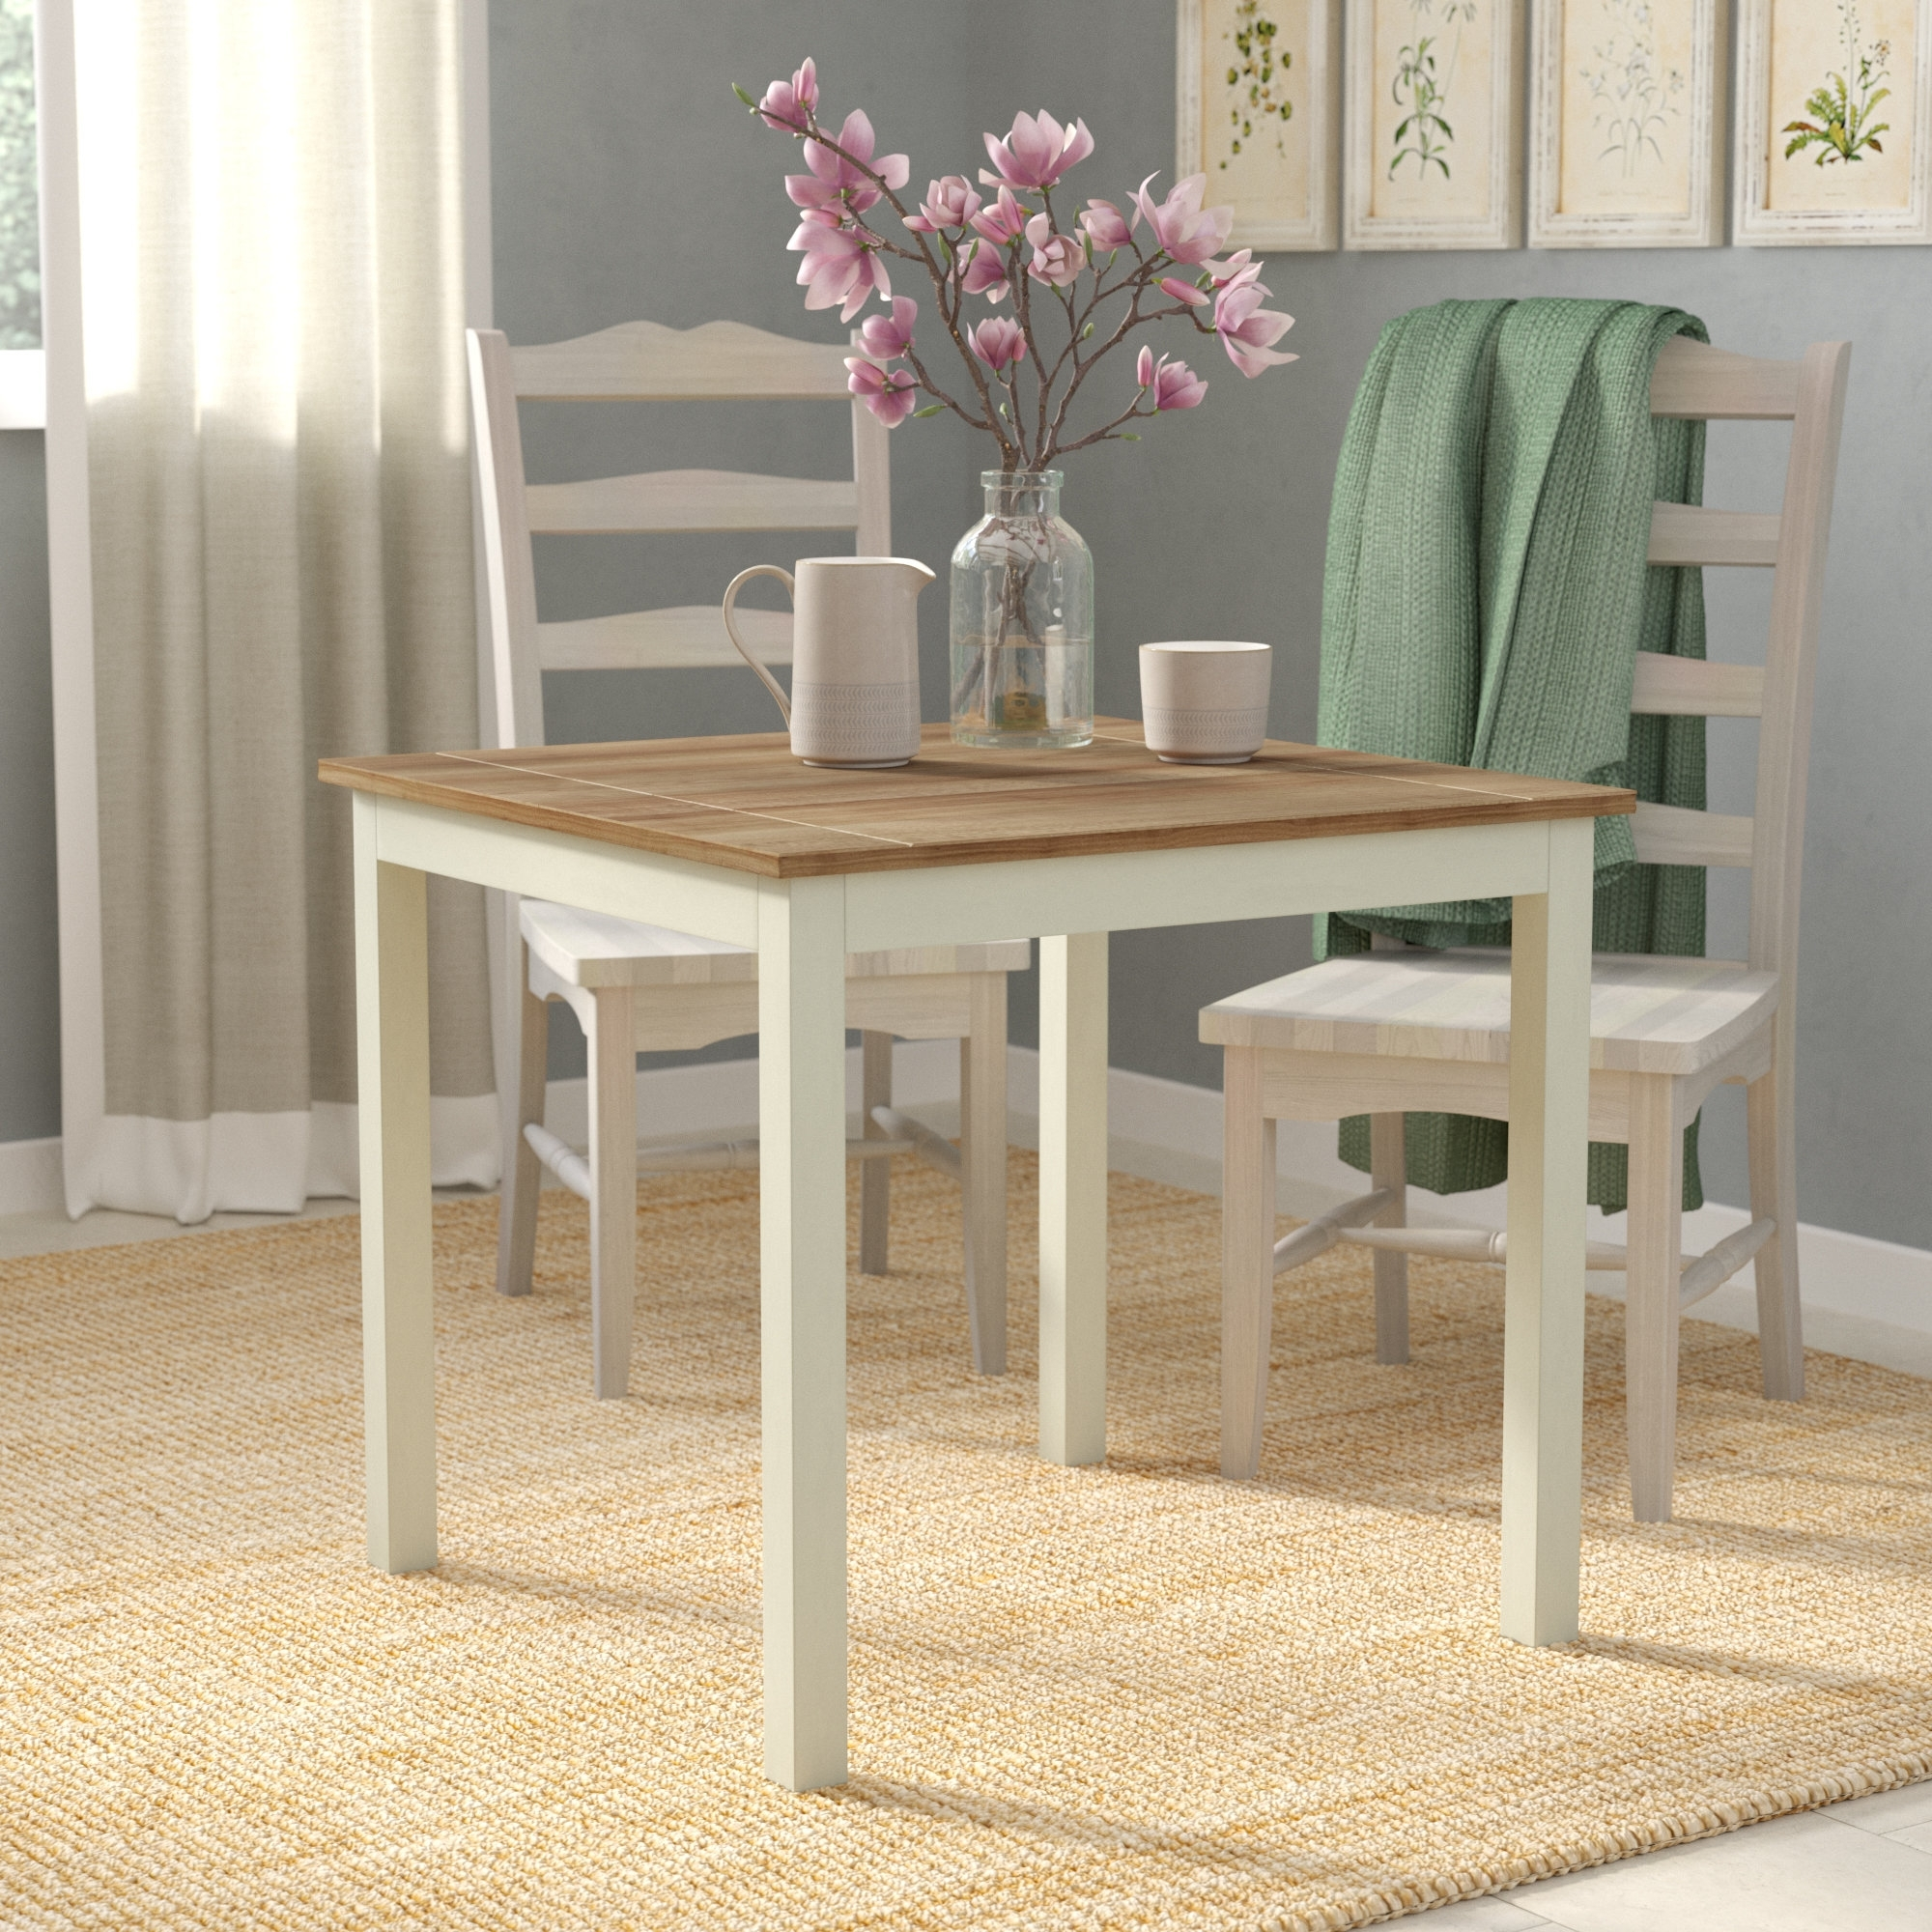 Wayfair Pertaining To Latest Modern Dining Room Sets (View 24 of 25)